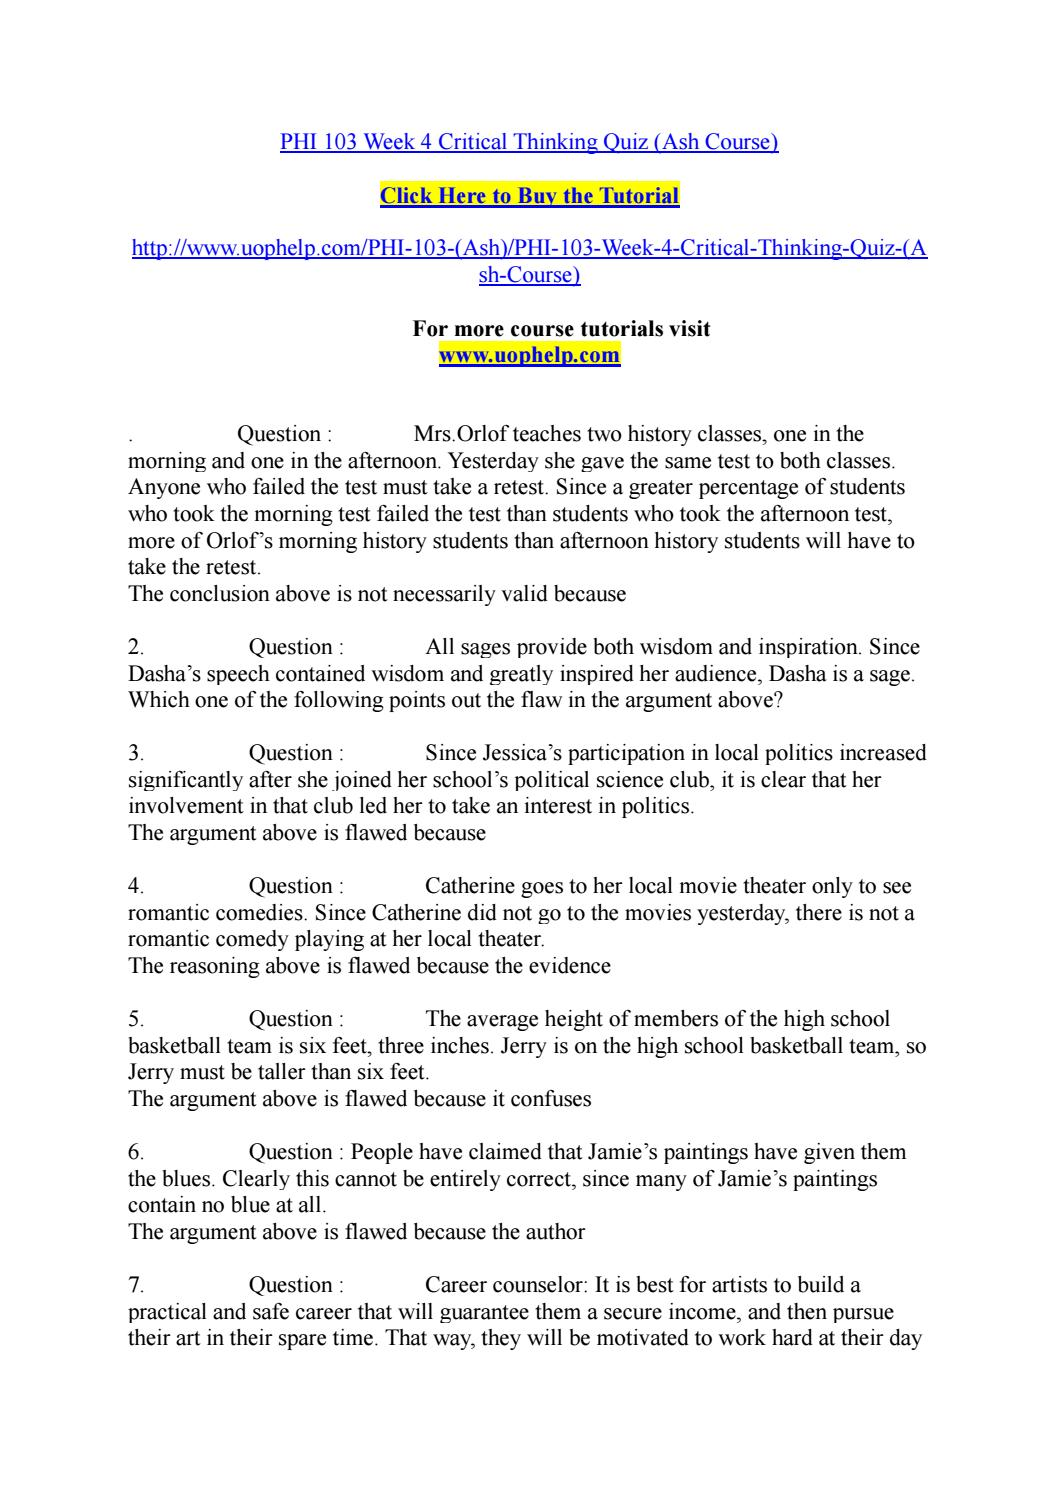 critical thinking quiz week 4 answers Power of critical thinking 4th edition answers  smarts quiz answer sheet acct1501 quiz 3 answers huntington sat prep critical  environment topic 4 answers.